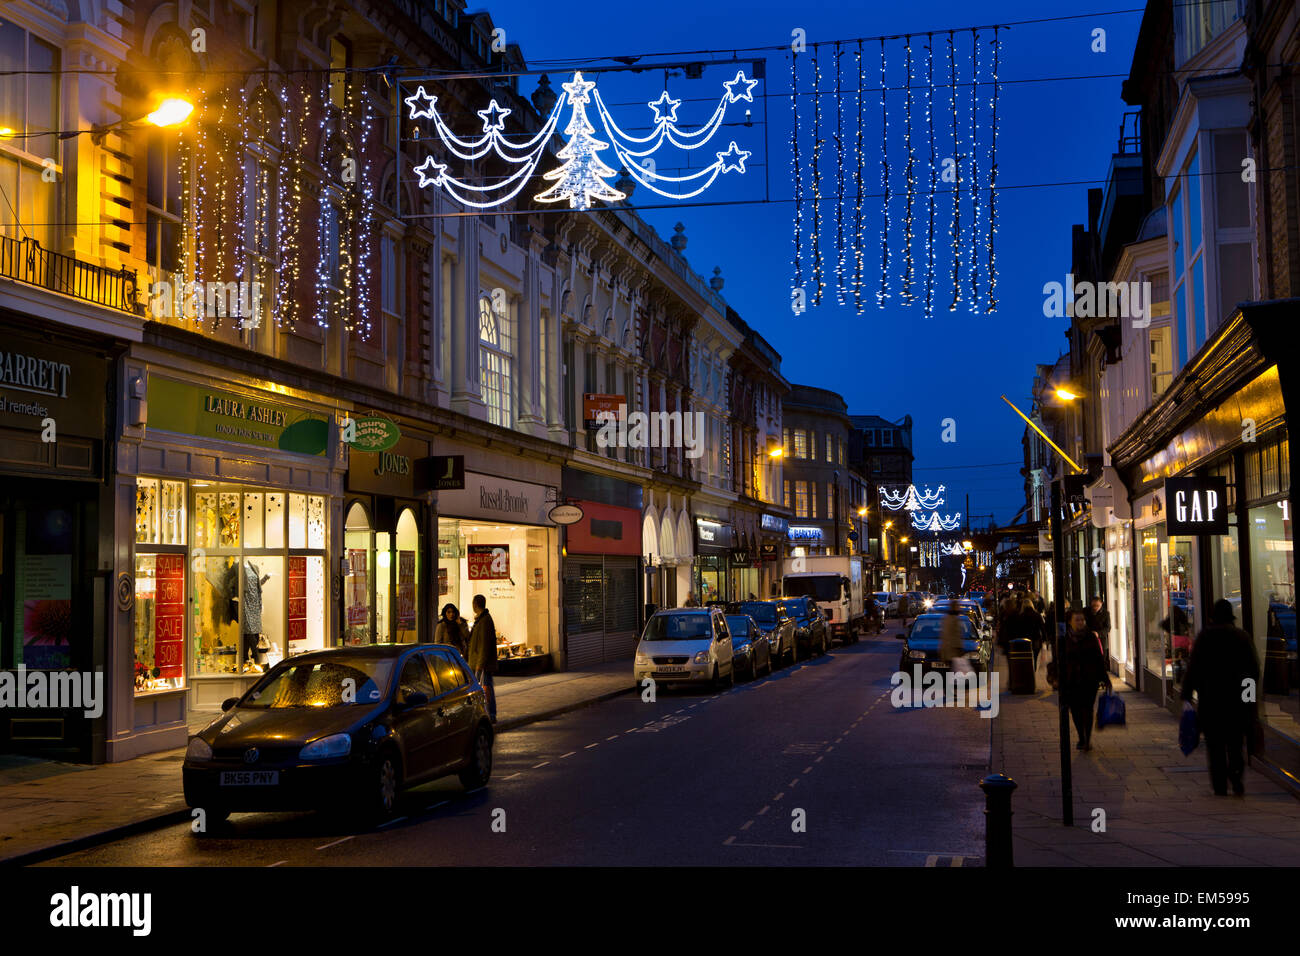 UK, England, Yorkshire, Harrogate at Christmas, James Street, lights above shops at dusk - Stock Image